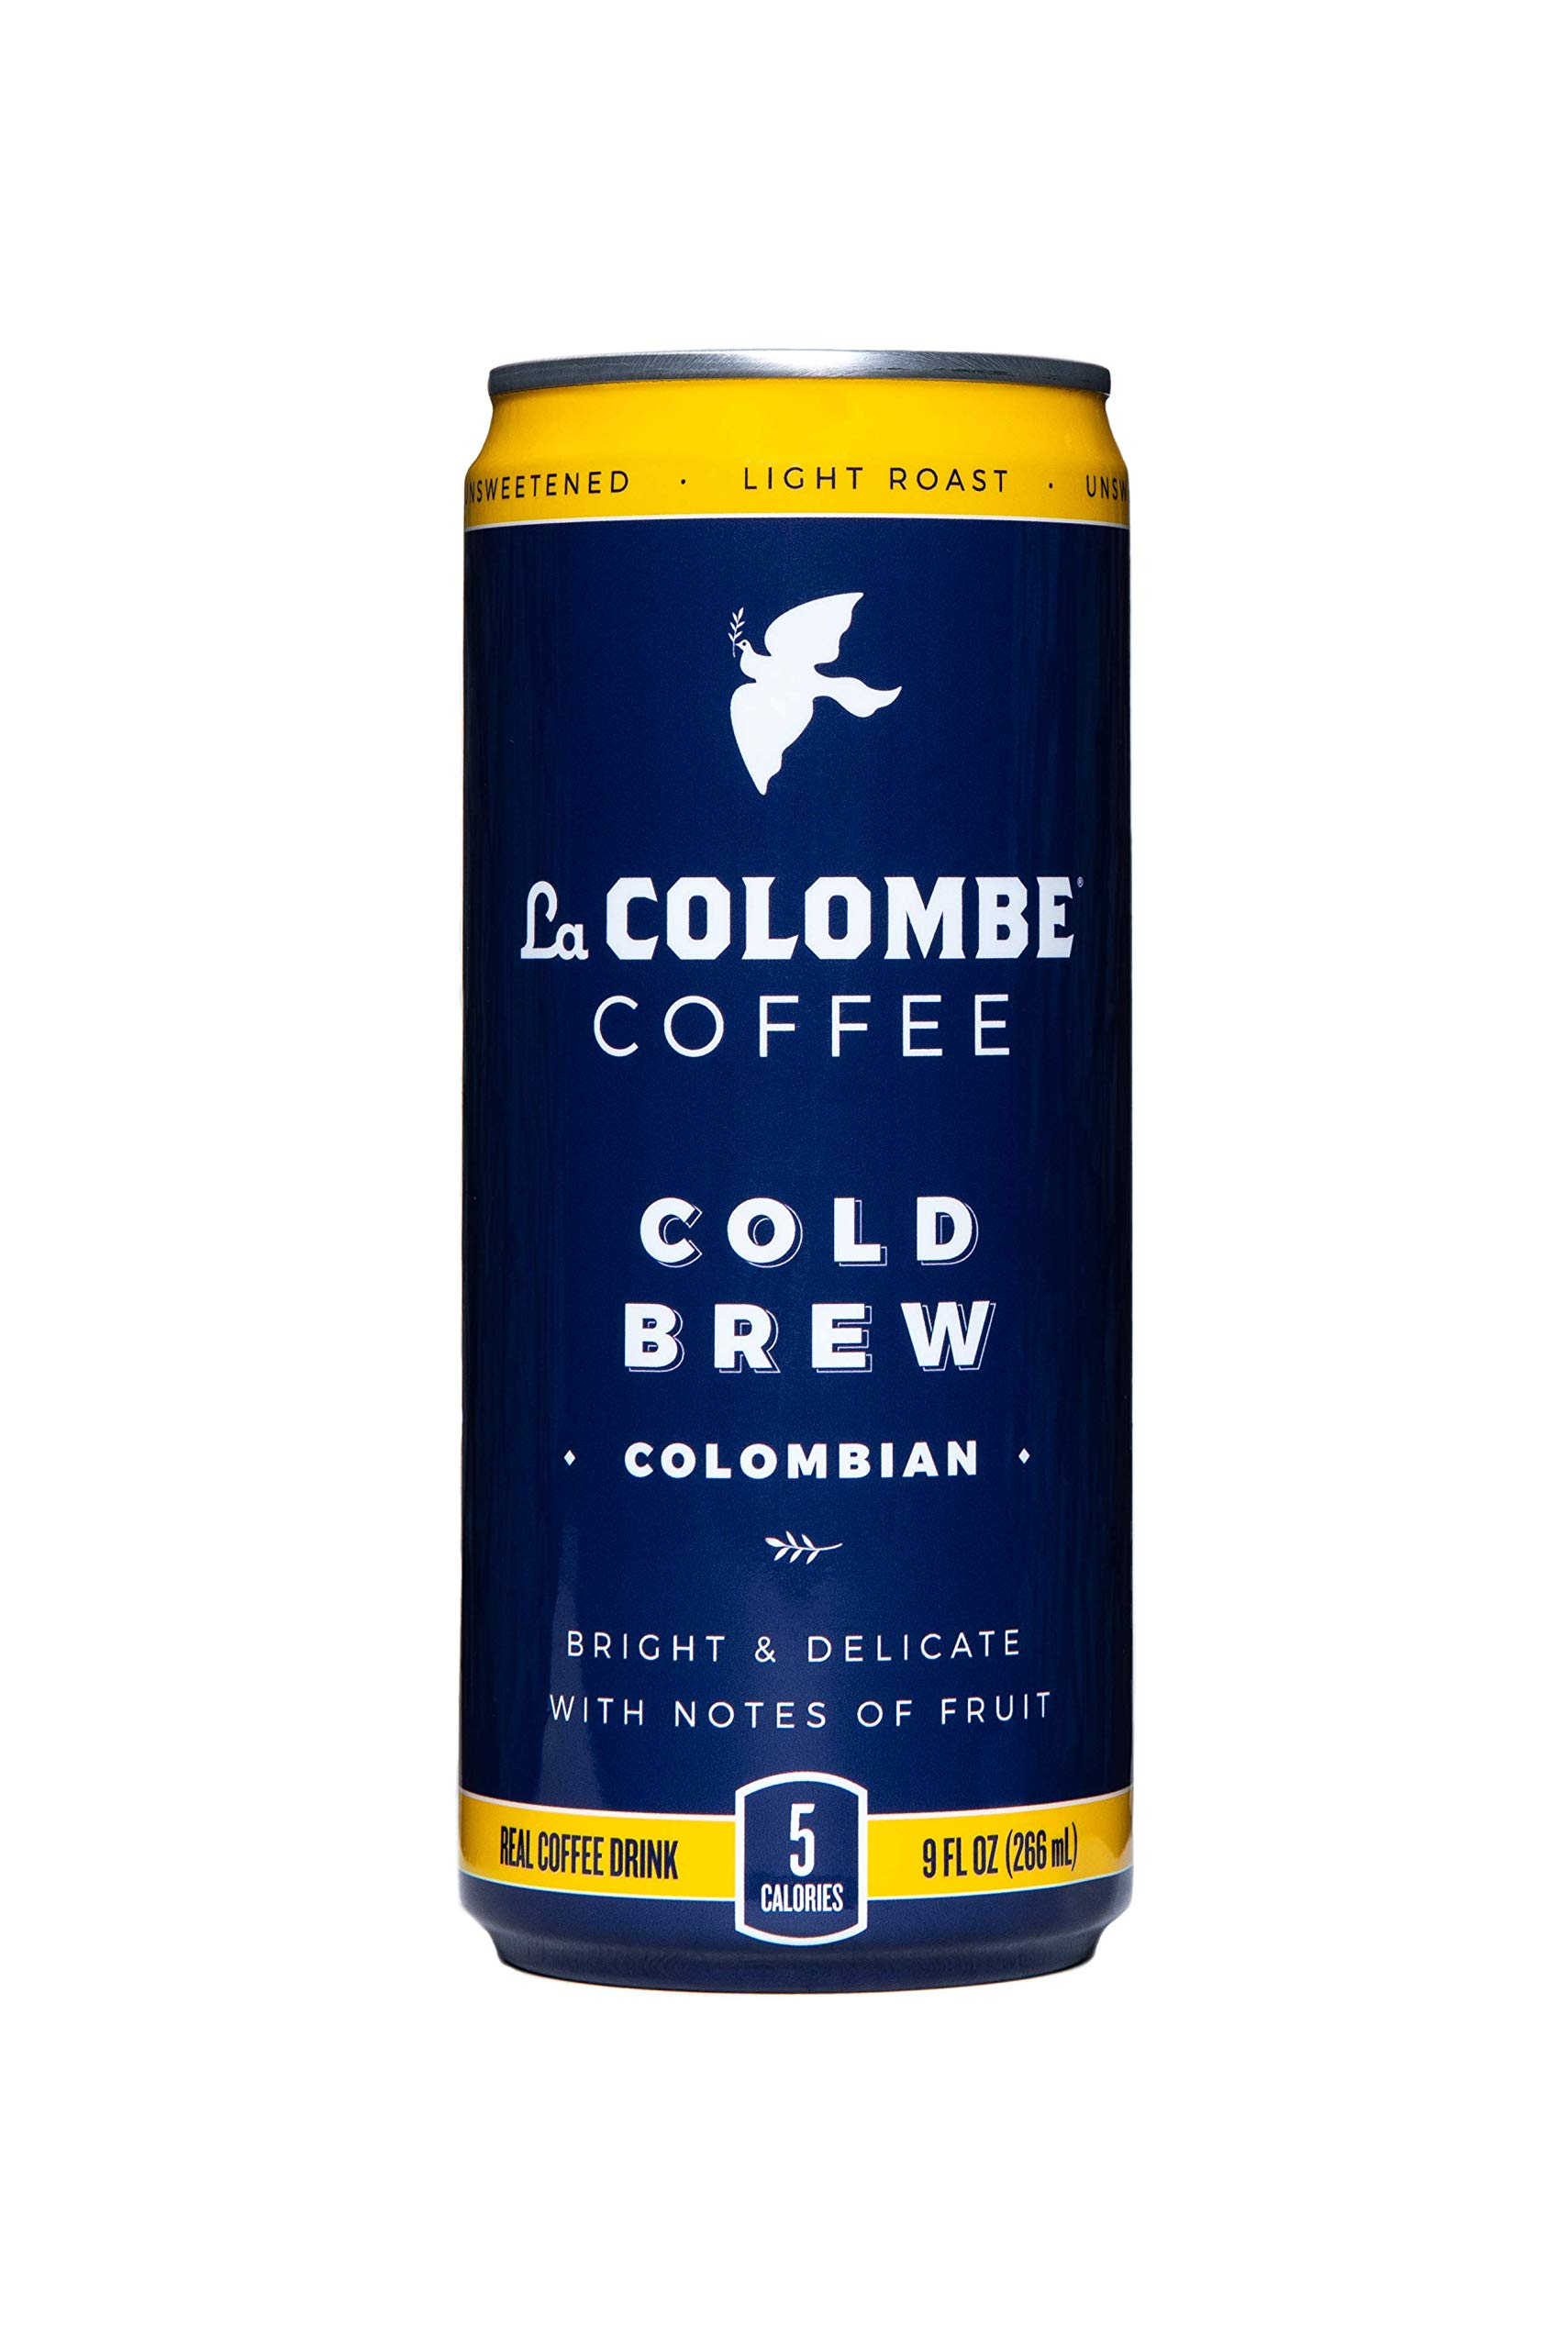 La Colombe Pure Black Colombian Cold-Pressed Coffee - 9 Fluid Ounce, 16 Count - Light Roast, Single-Origin Cold Brew - Made With Real Ingredients - No Sugar Added - Grab And Go Coffee